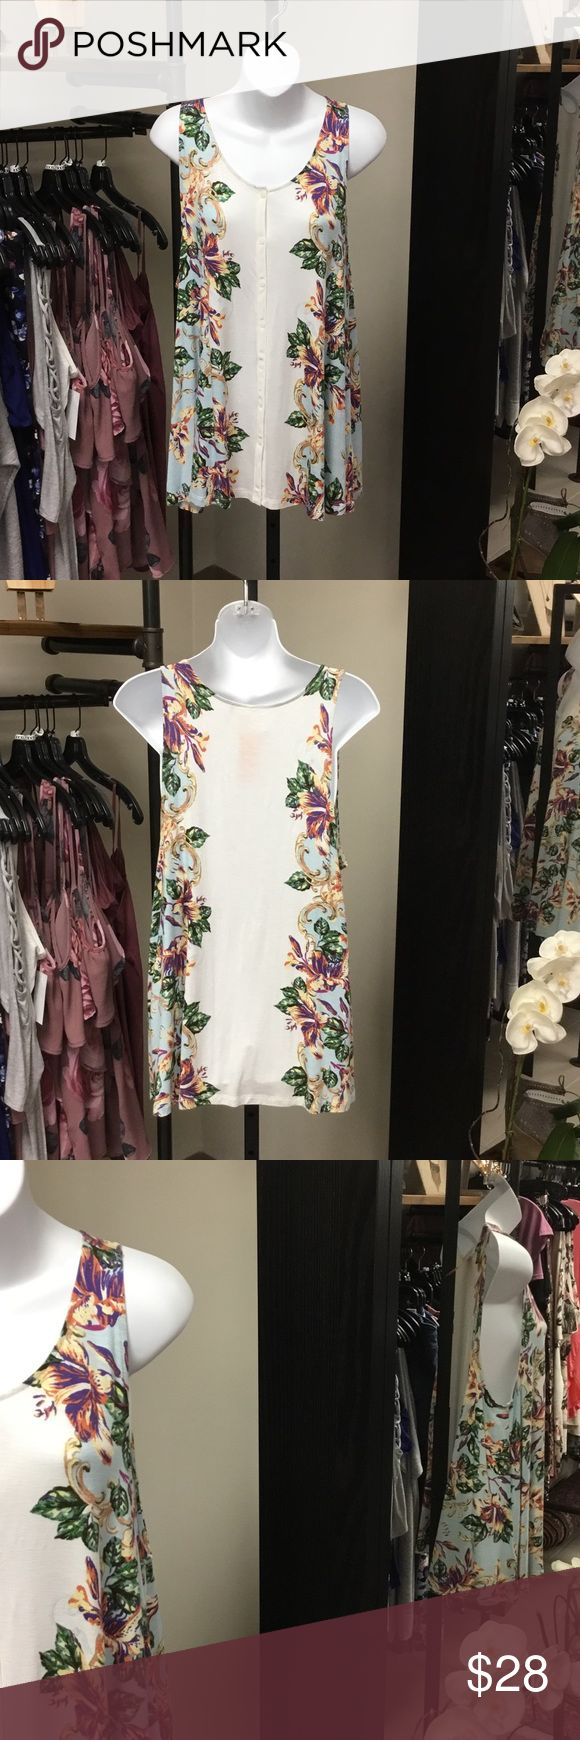 Anemi & Kin button down sleeveless top Floral detail button down amendment & kin top in great condition. Mark on label. Very deep side cut as pictured. Tops Button Down Shirts